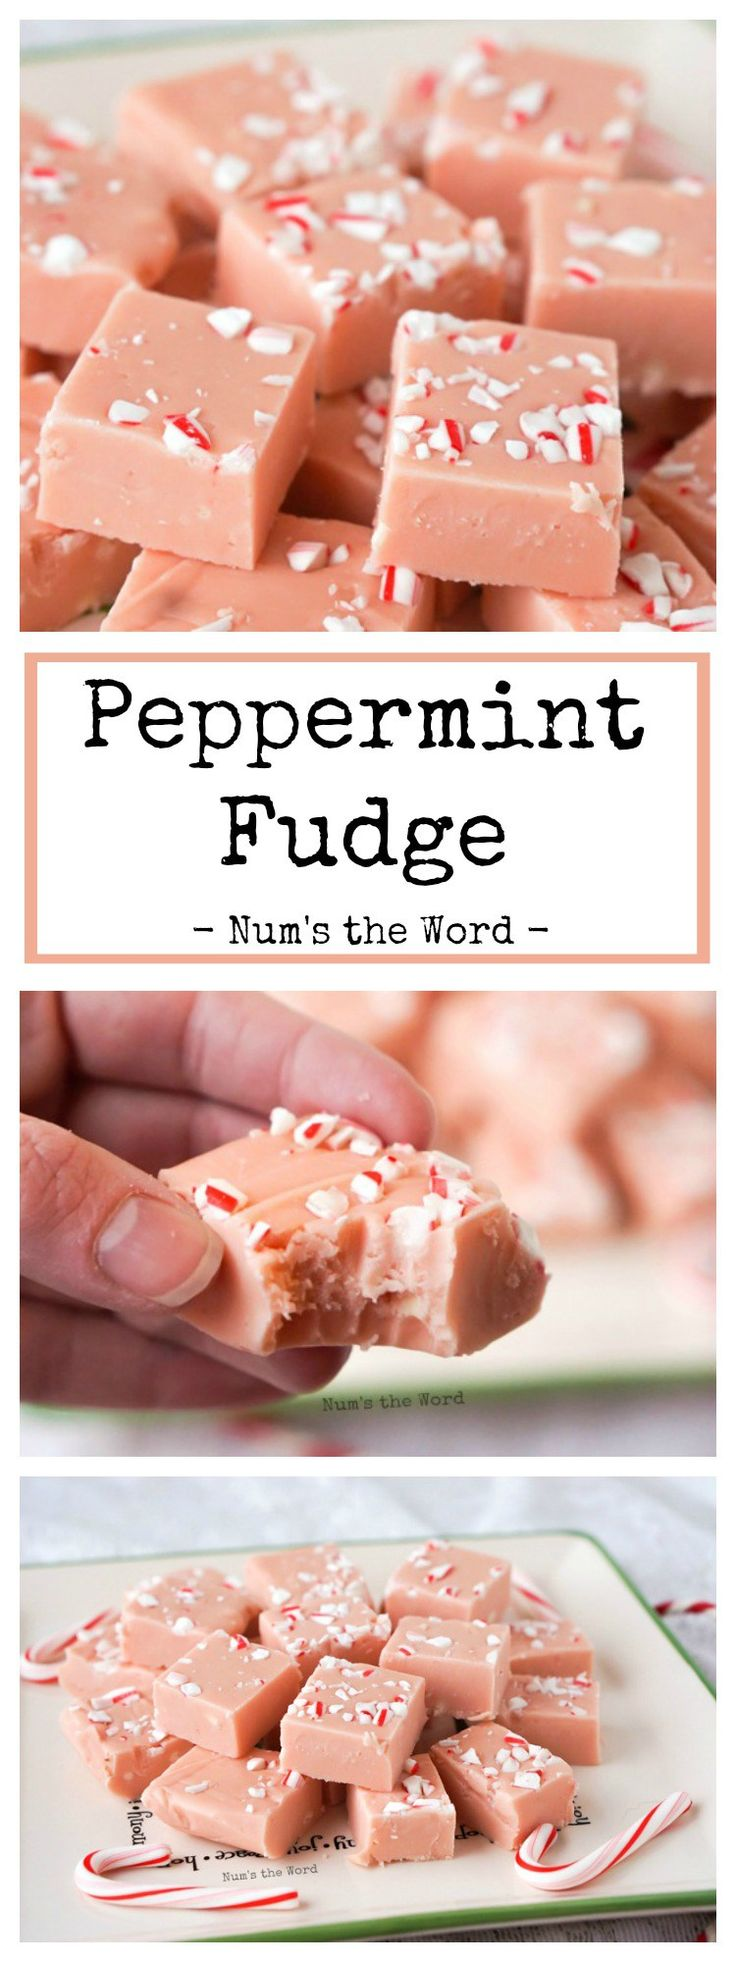 This Peppermint Fudge is creamy, flavorful and so easy to make! This takes 15 minutes to make and is melt in your mouth delicious! Perfect for Christmas!